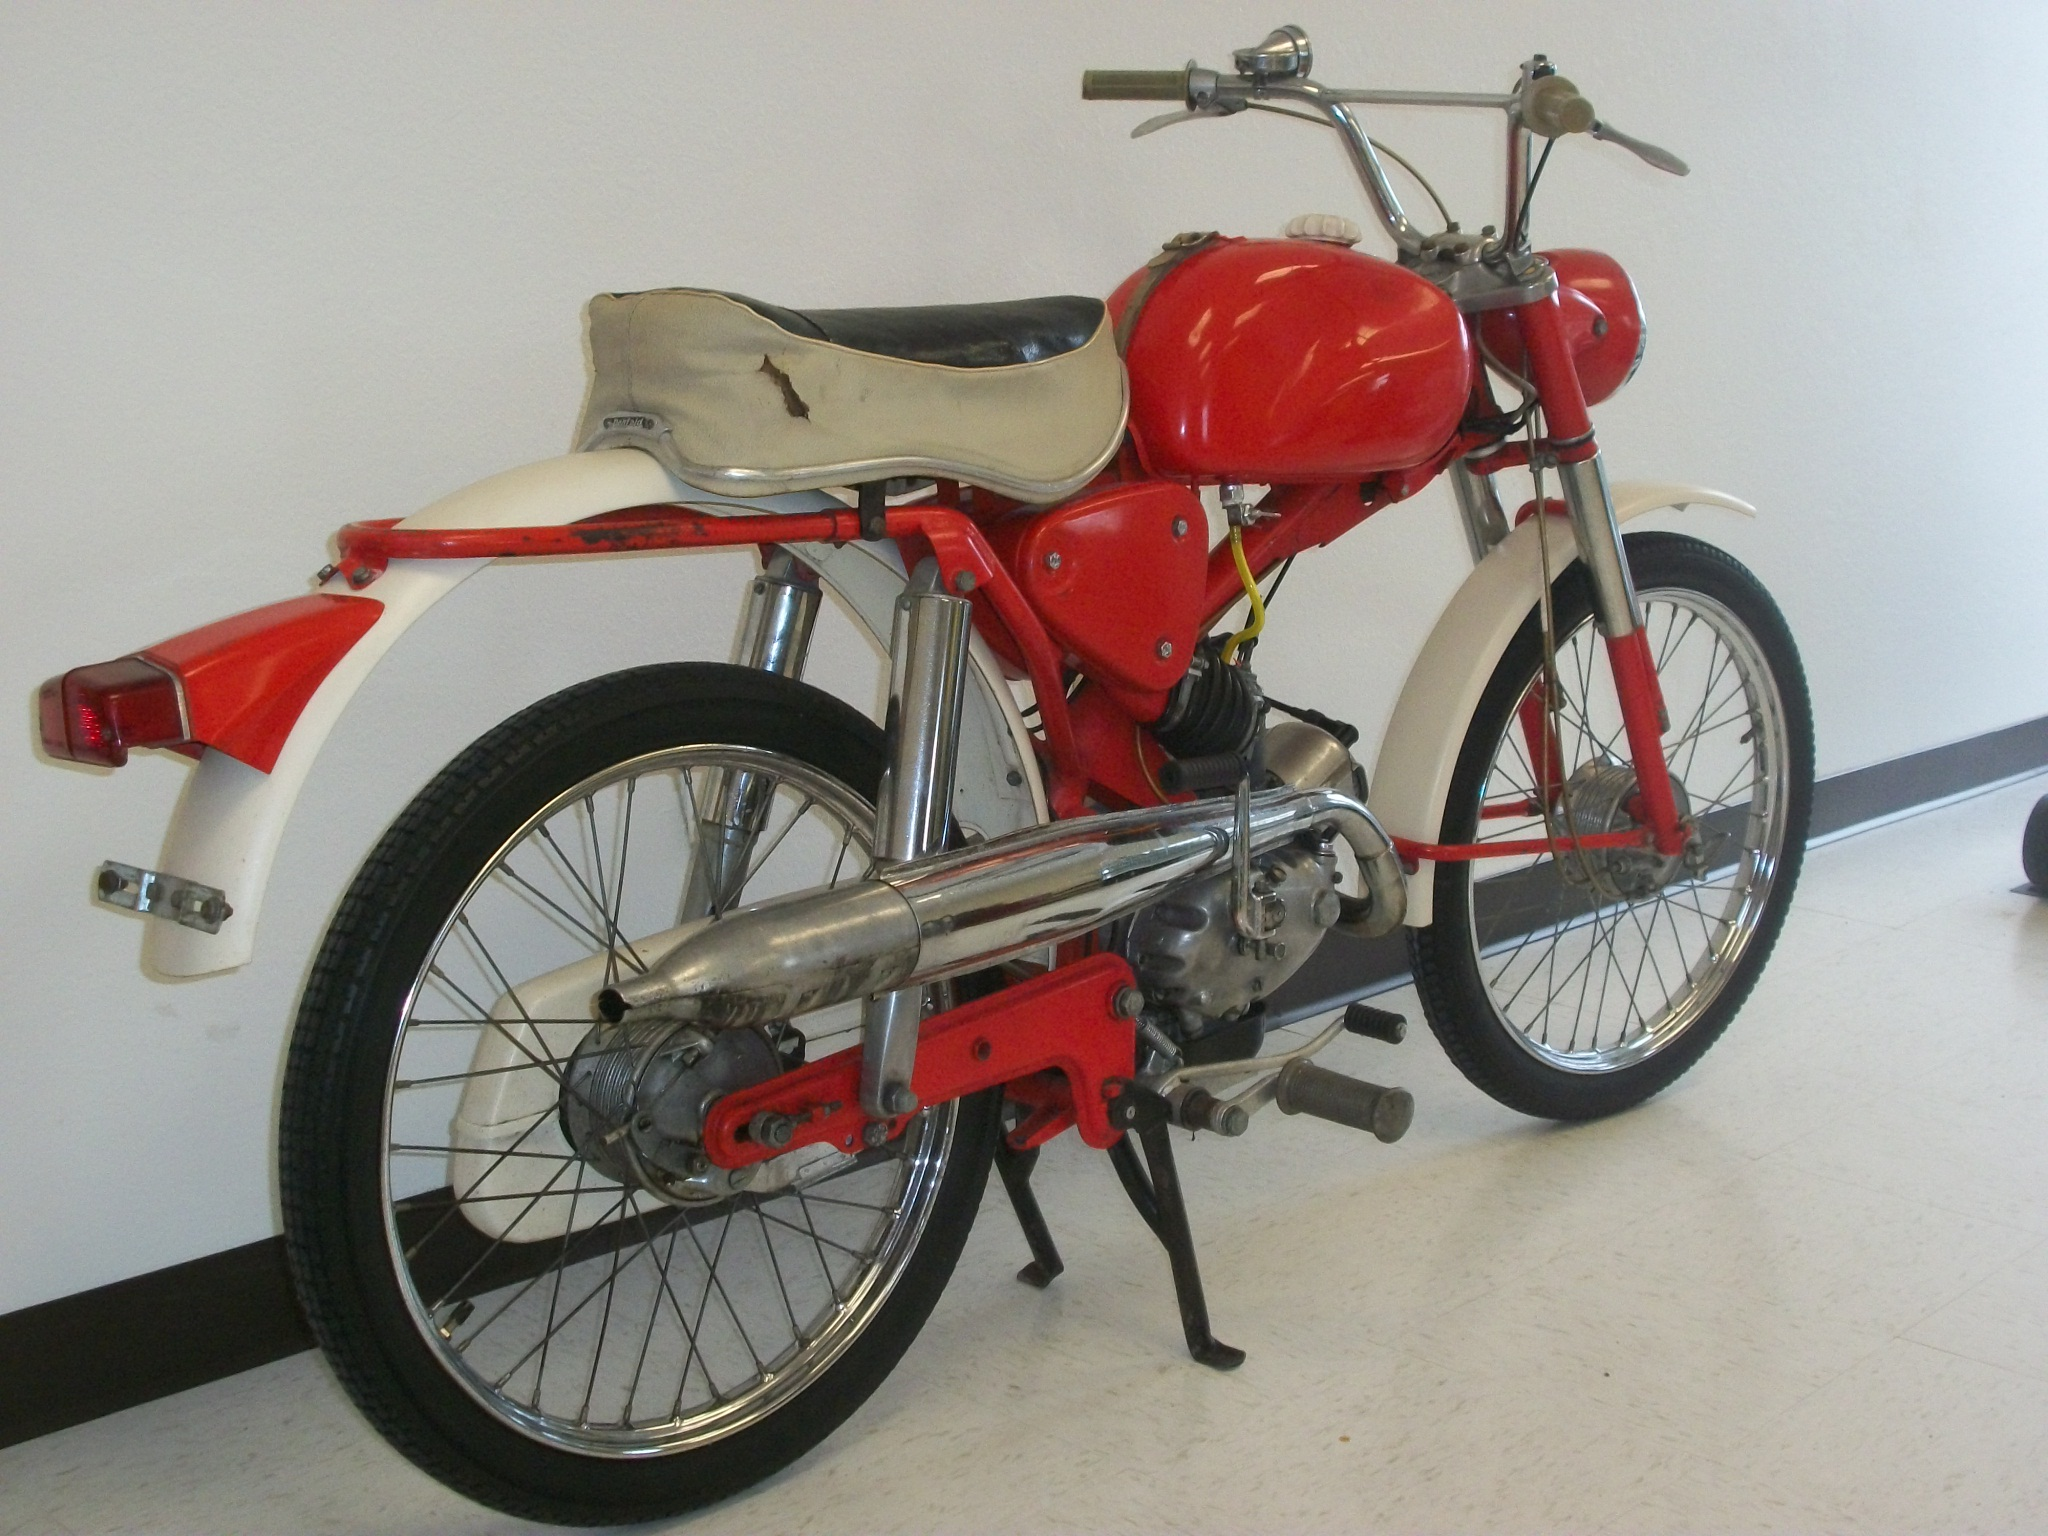 Used 1964 Allstate Puch Sport 60 Moped Sold Sunday Morning Motors 1978 Wiring Diagram 100 5469 5449 5456 5452 5455 5466 5468 5465 5460